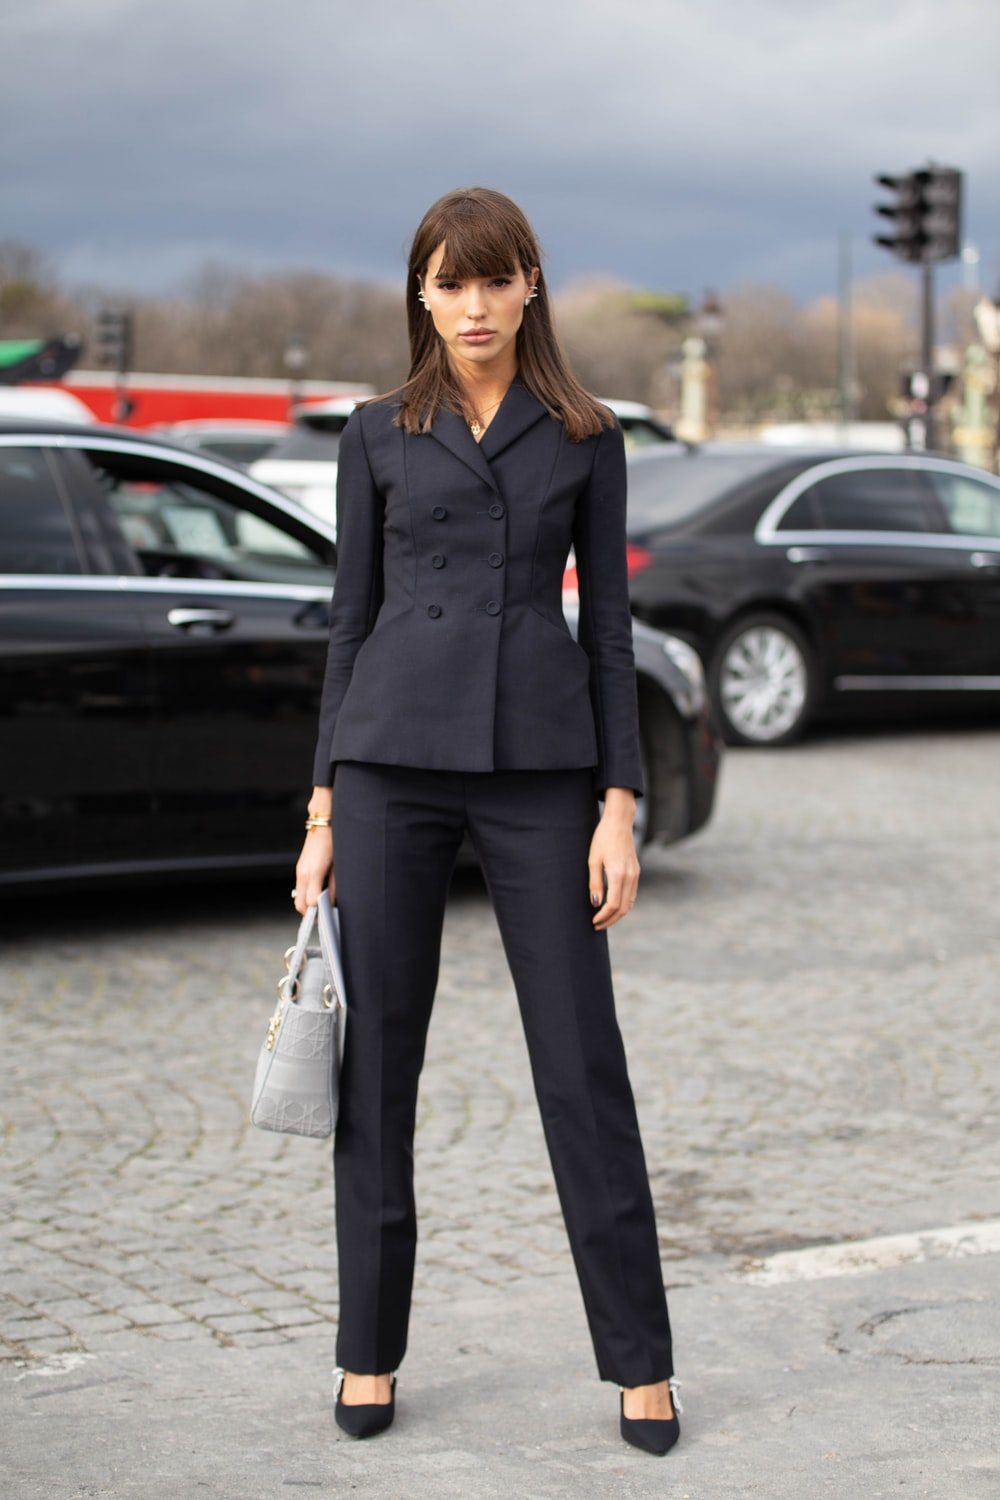 woman in black blazer and black pants standing on road during daytime